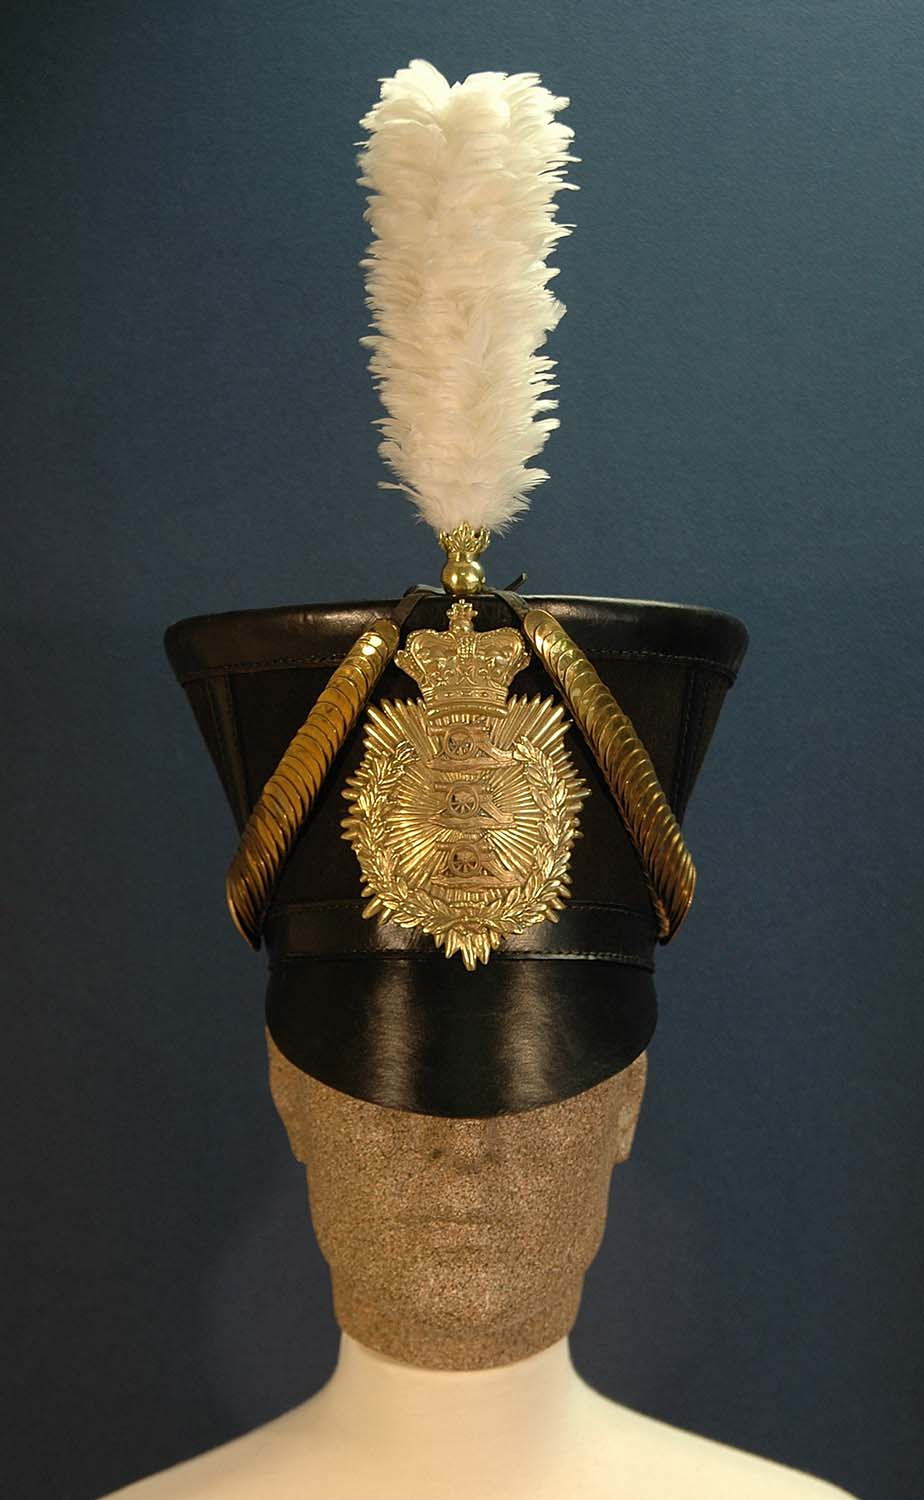 British, Royal Artillery Shako, Gunner